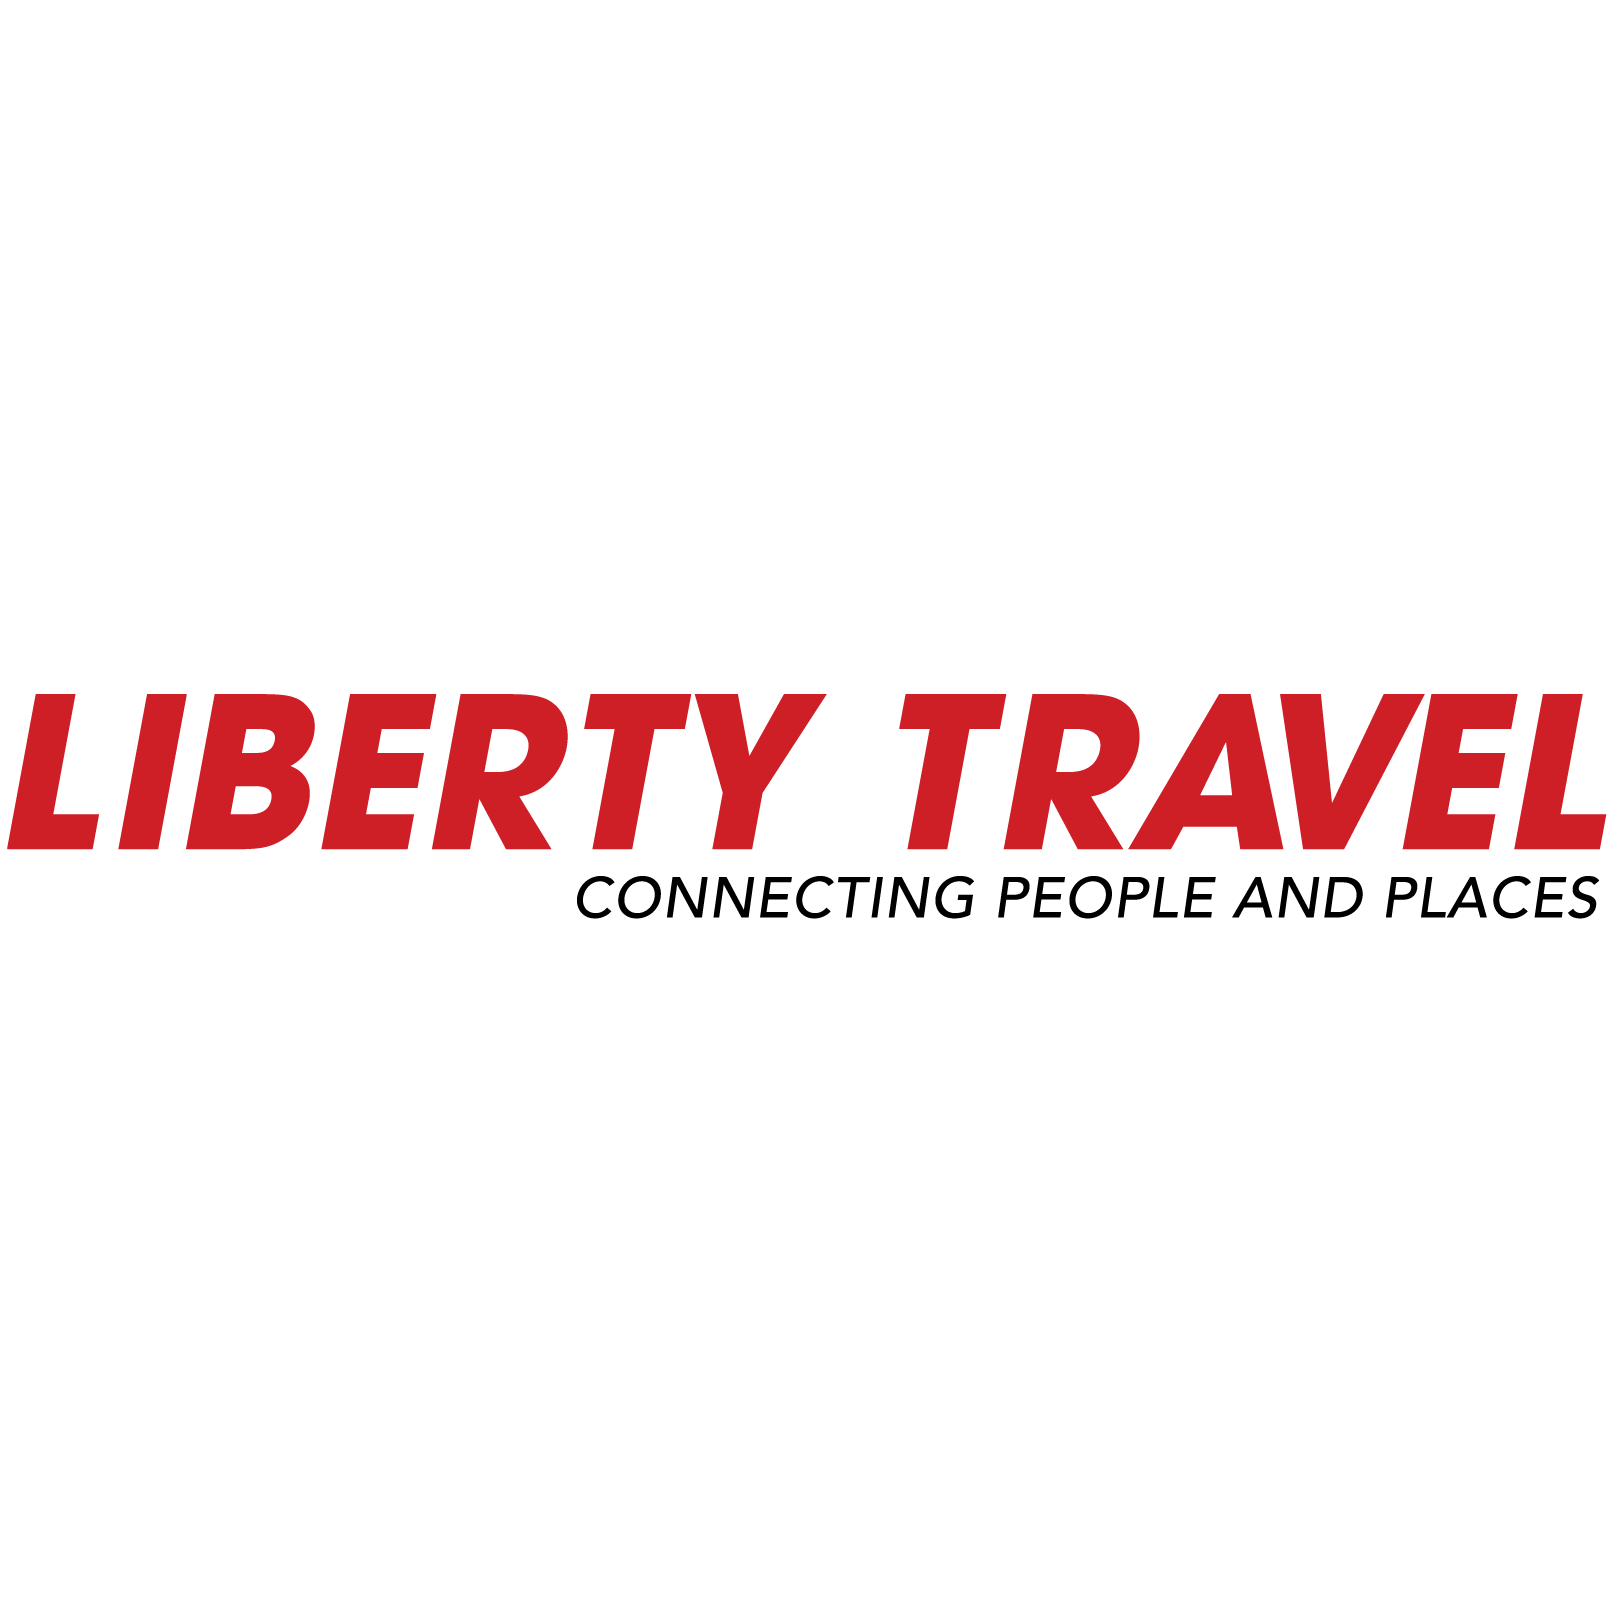 Liberty Travel - Lawrence Township, NJ - Travel Agencies & Ticketers